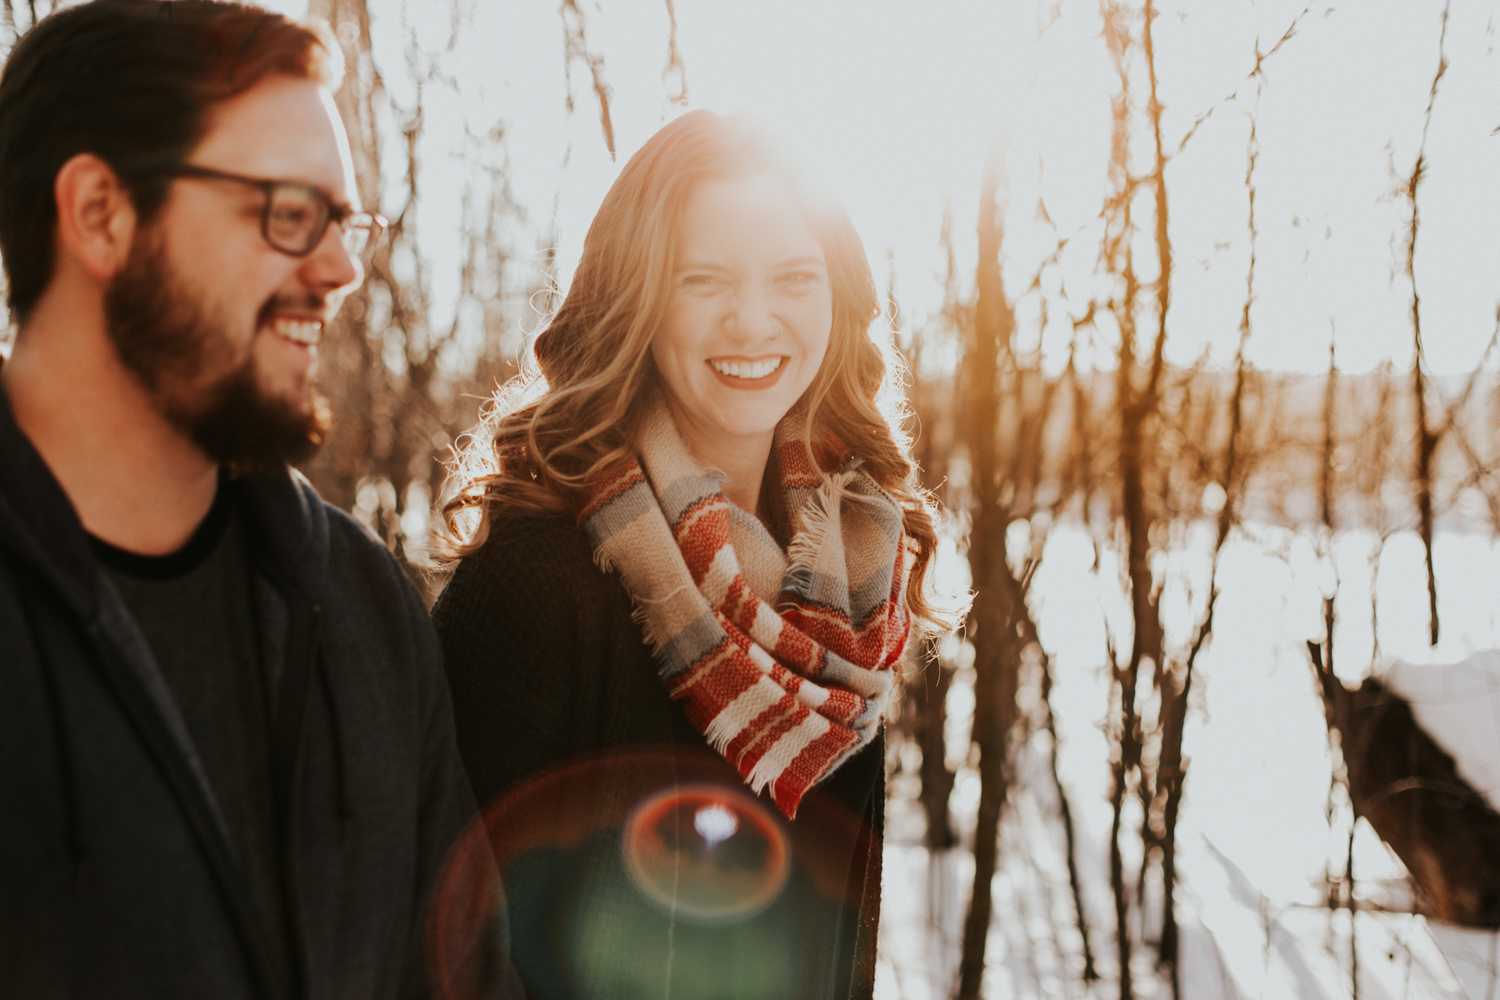 lethbridge-photography-love-and-be-loved-photographer-dan-tynnea-engagement-picture-image-photo-17.jpg